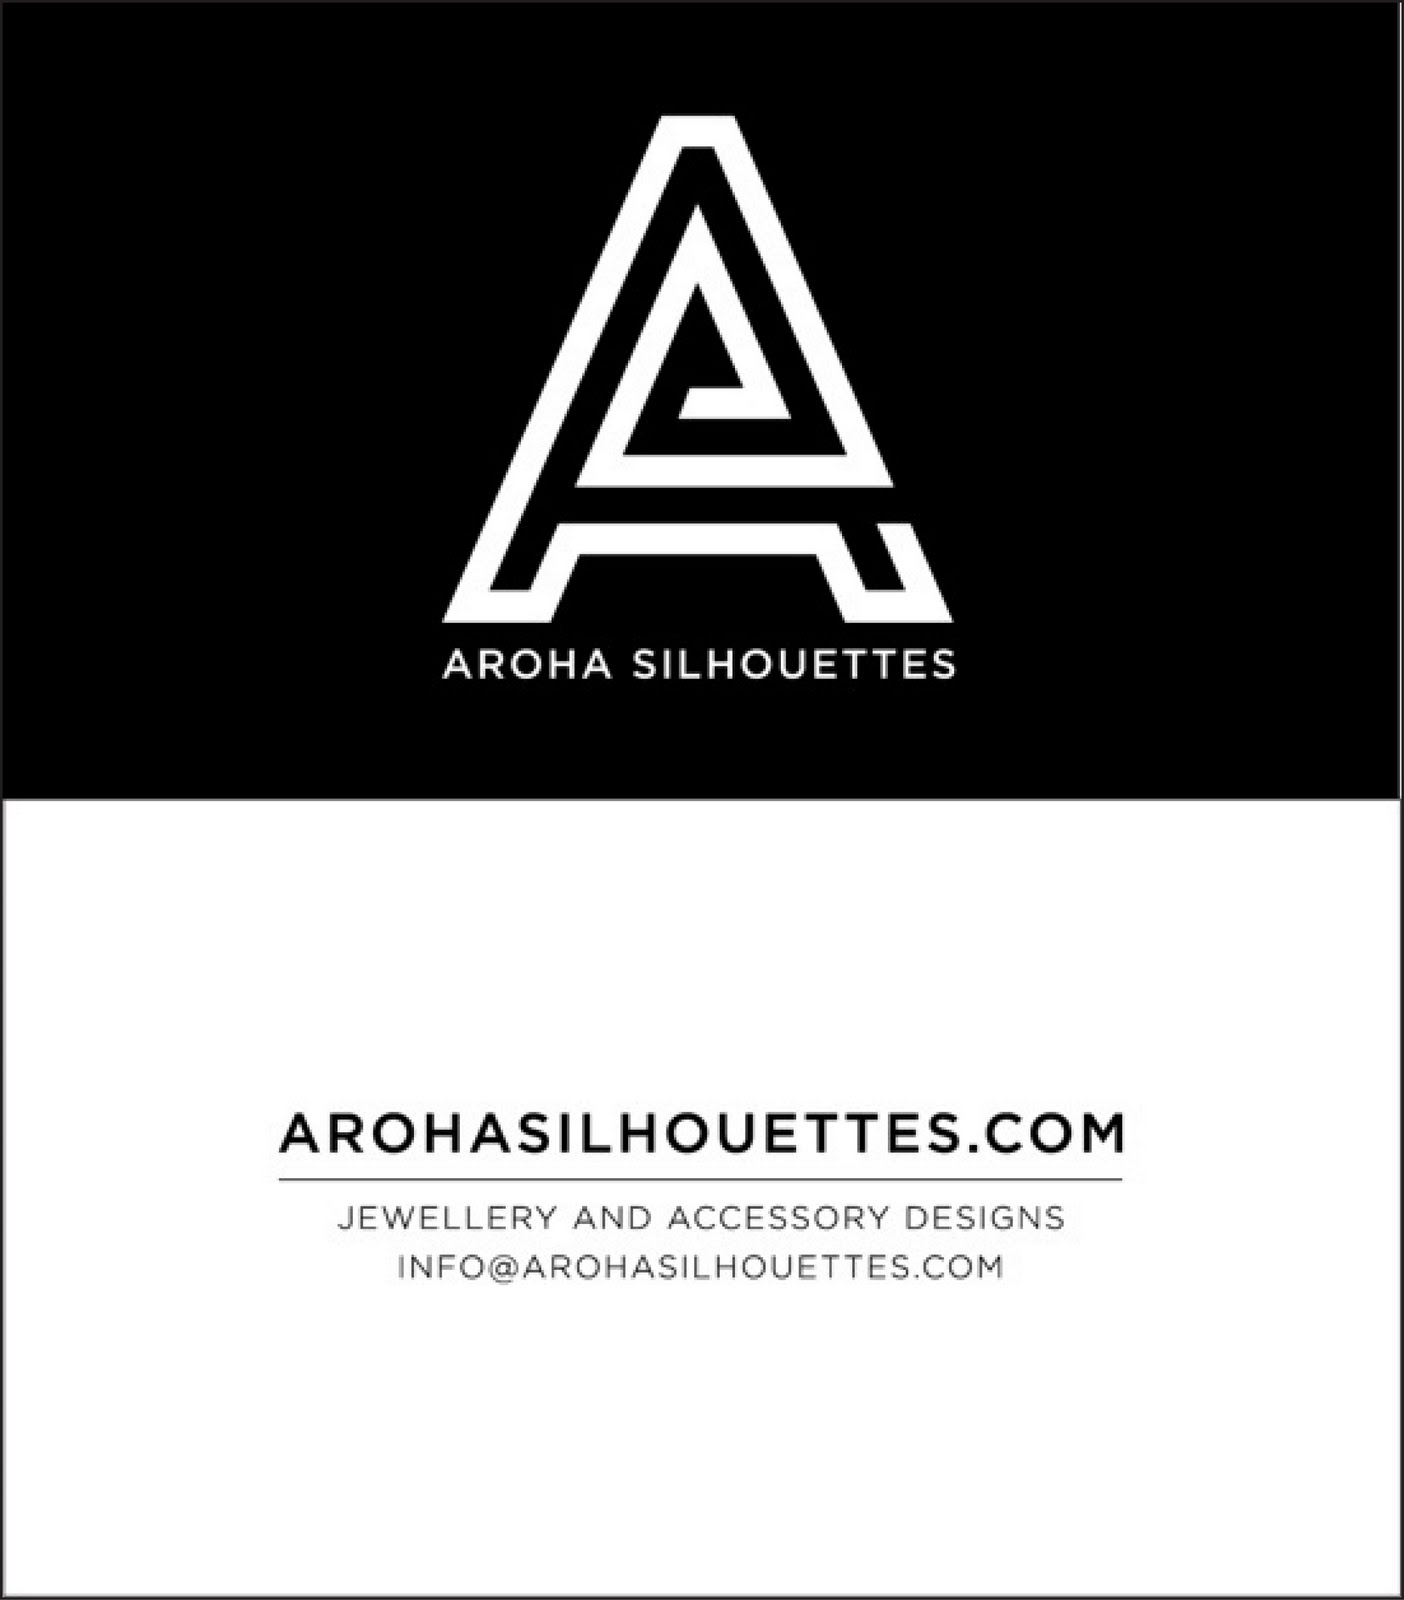 Aroha Silhouettes 2010 Business Cards Front and Back Black and White